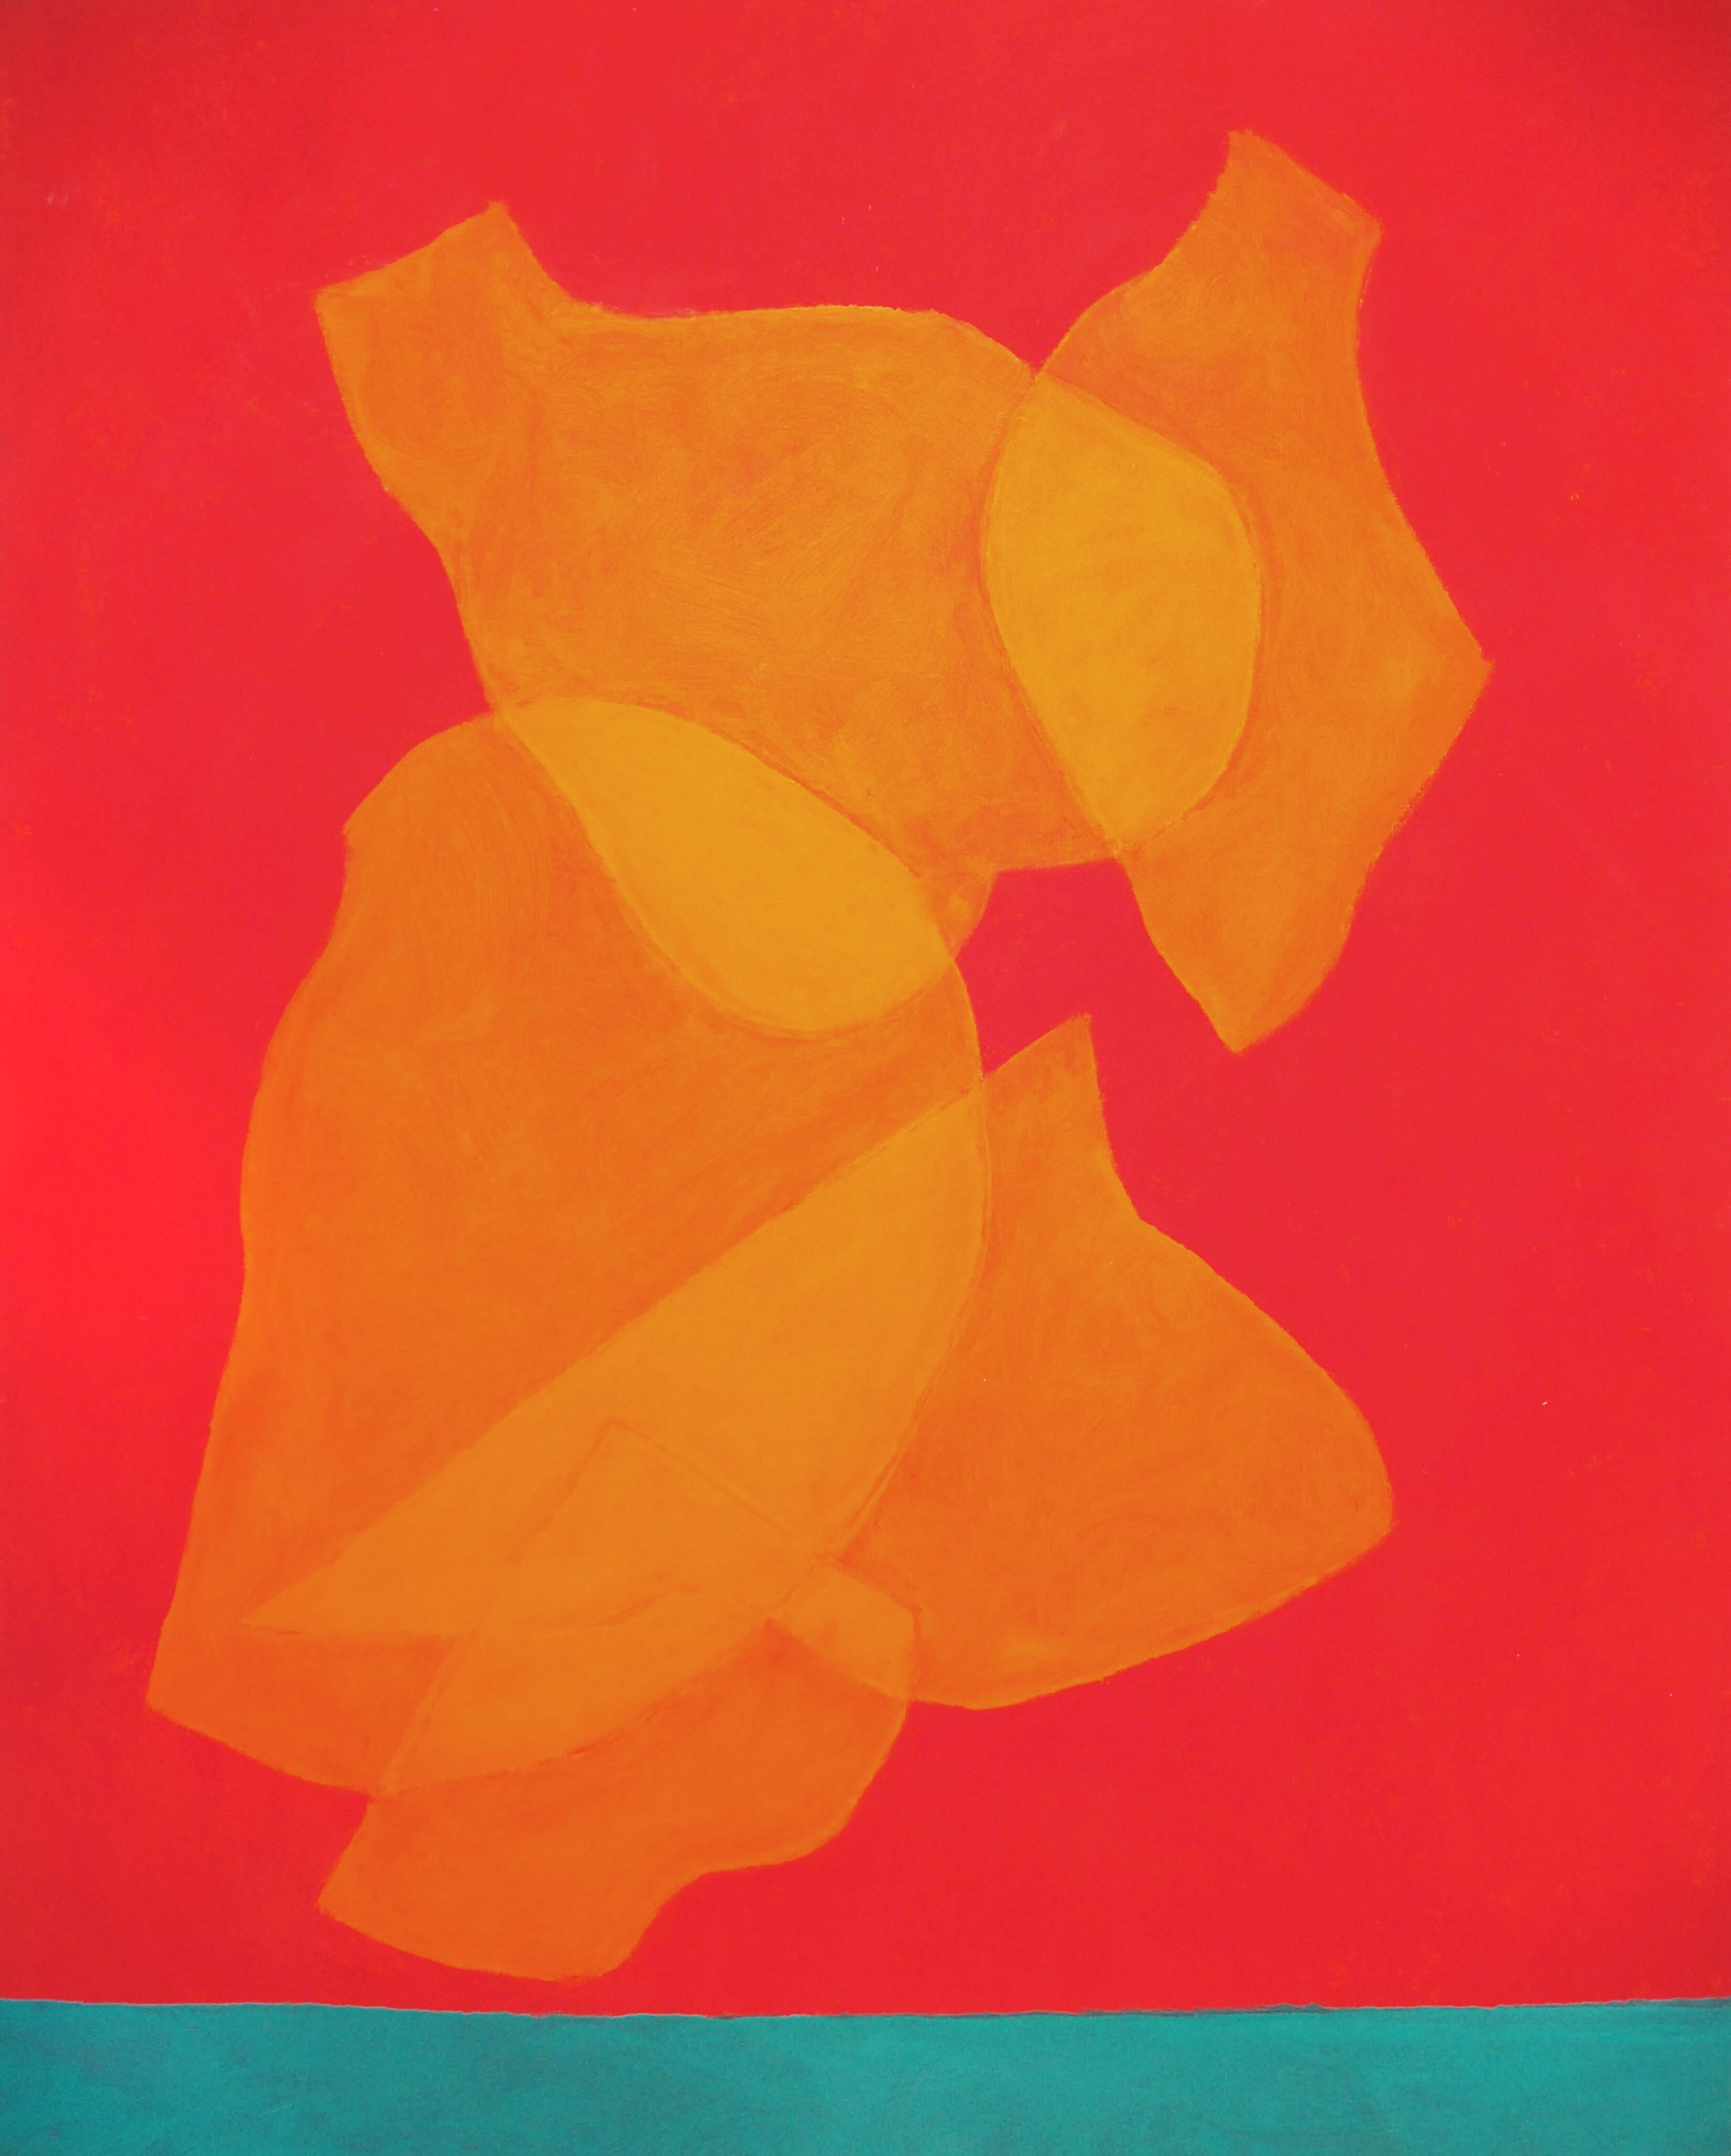 Cleve Gray, Ascensions #4, Oil on Canvas, 1997